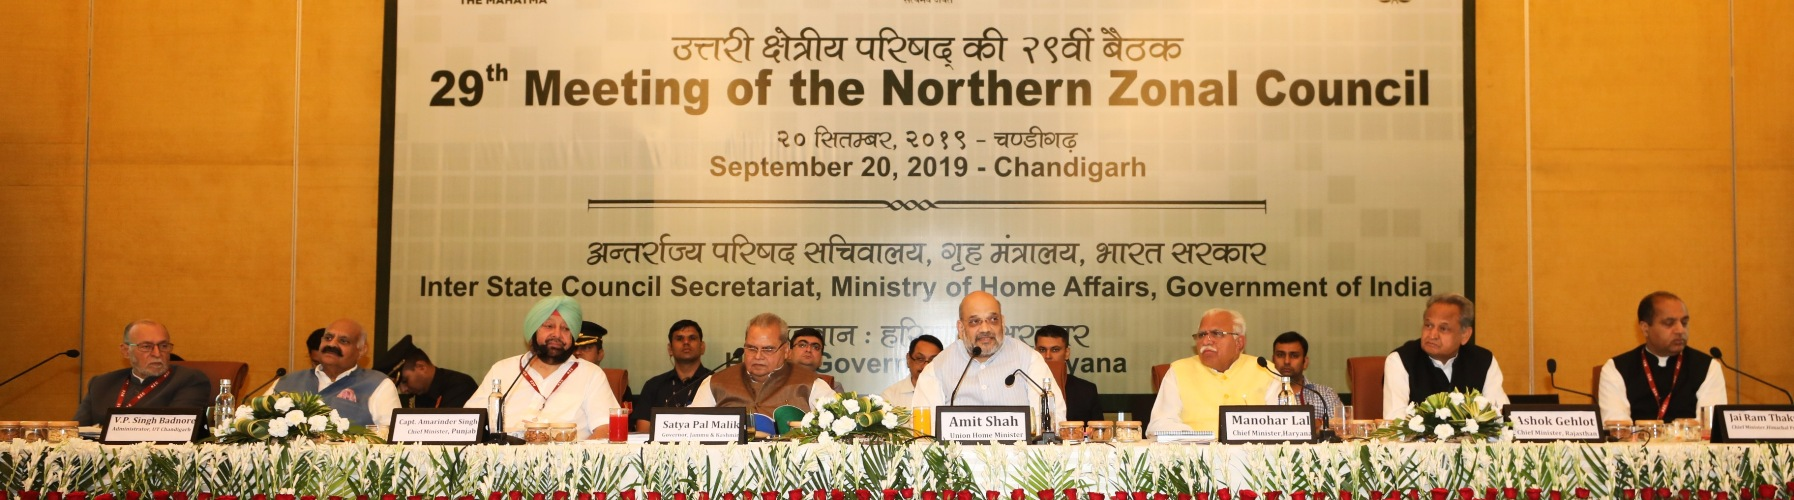 Union Home Minister, Shri Amit Shah chairing the 29th Meeting of the Northern Zonal Council in Chandigarh on 20.09.19